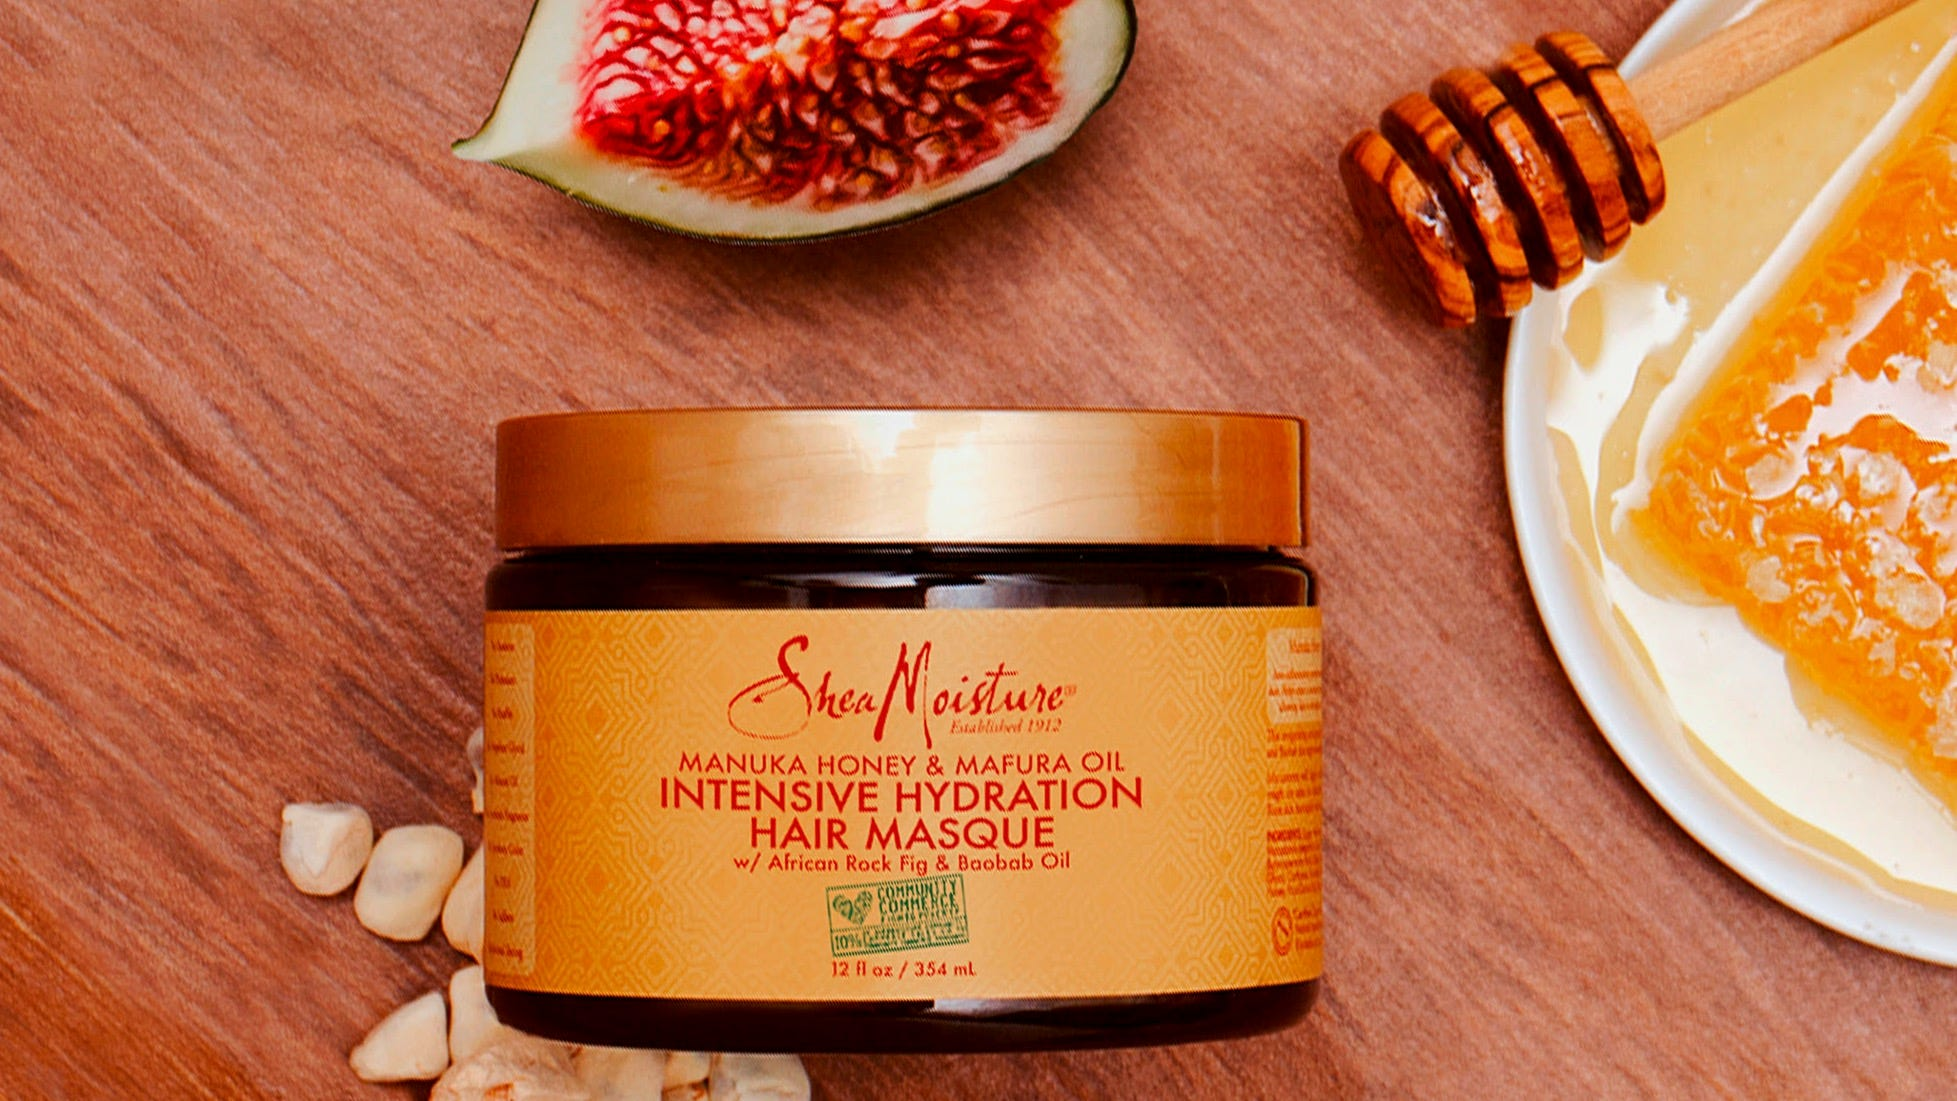 A jar of Shea Moisture Intensive Hydration Hair Masque on a table next to some sliced fruit and honey.